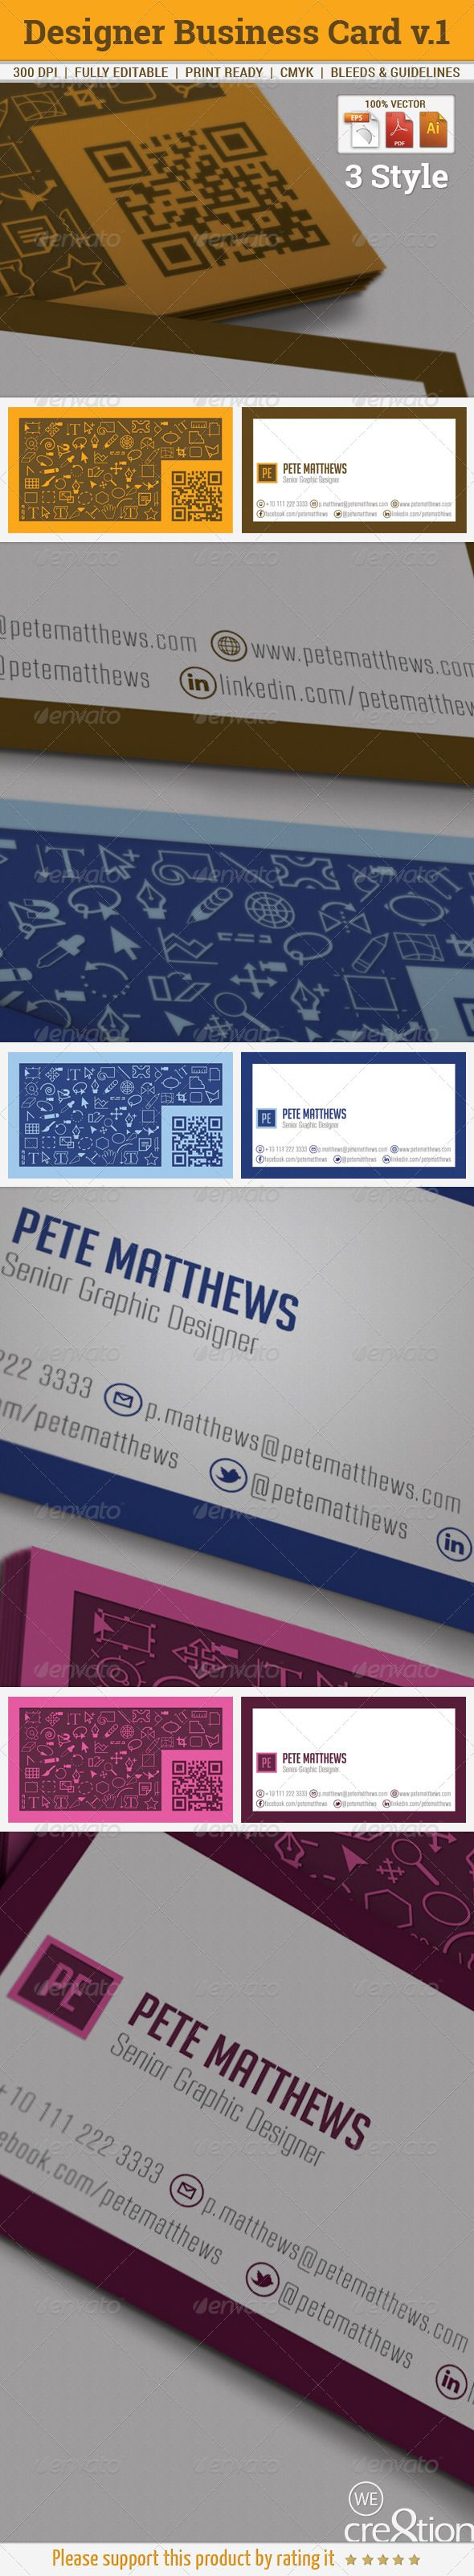 This is a complete #print ready #Business #Card #Clean and #modern style look. suitable for #Creative #Designer.  #brand #branding #corporate #creative #design #elegant #identity #professional #stationery